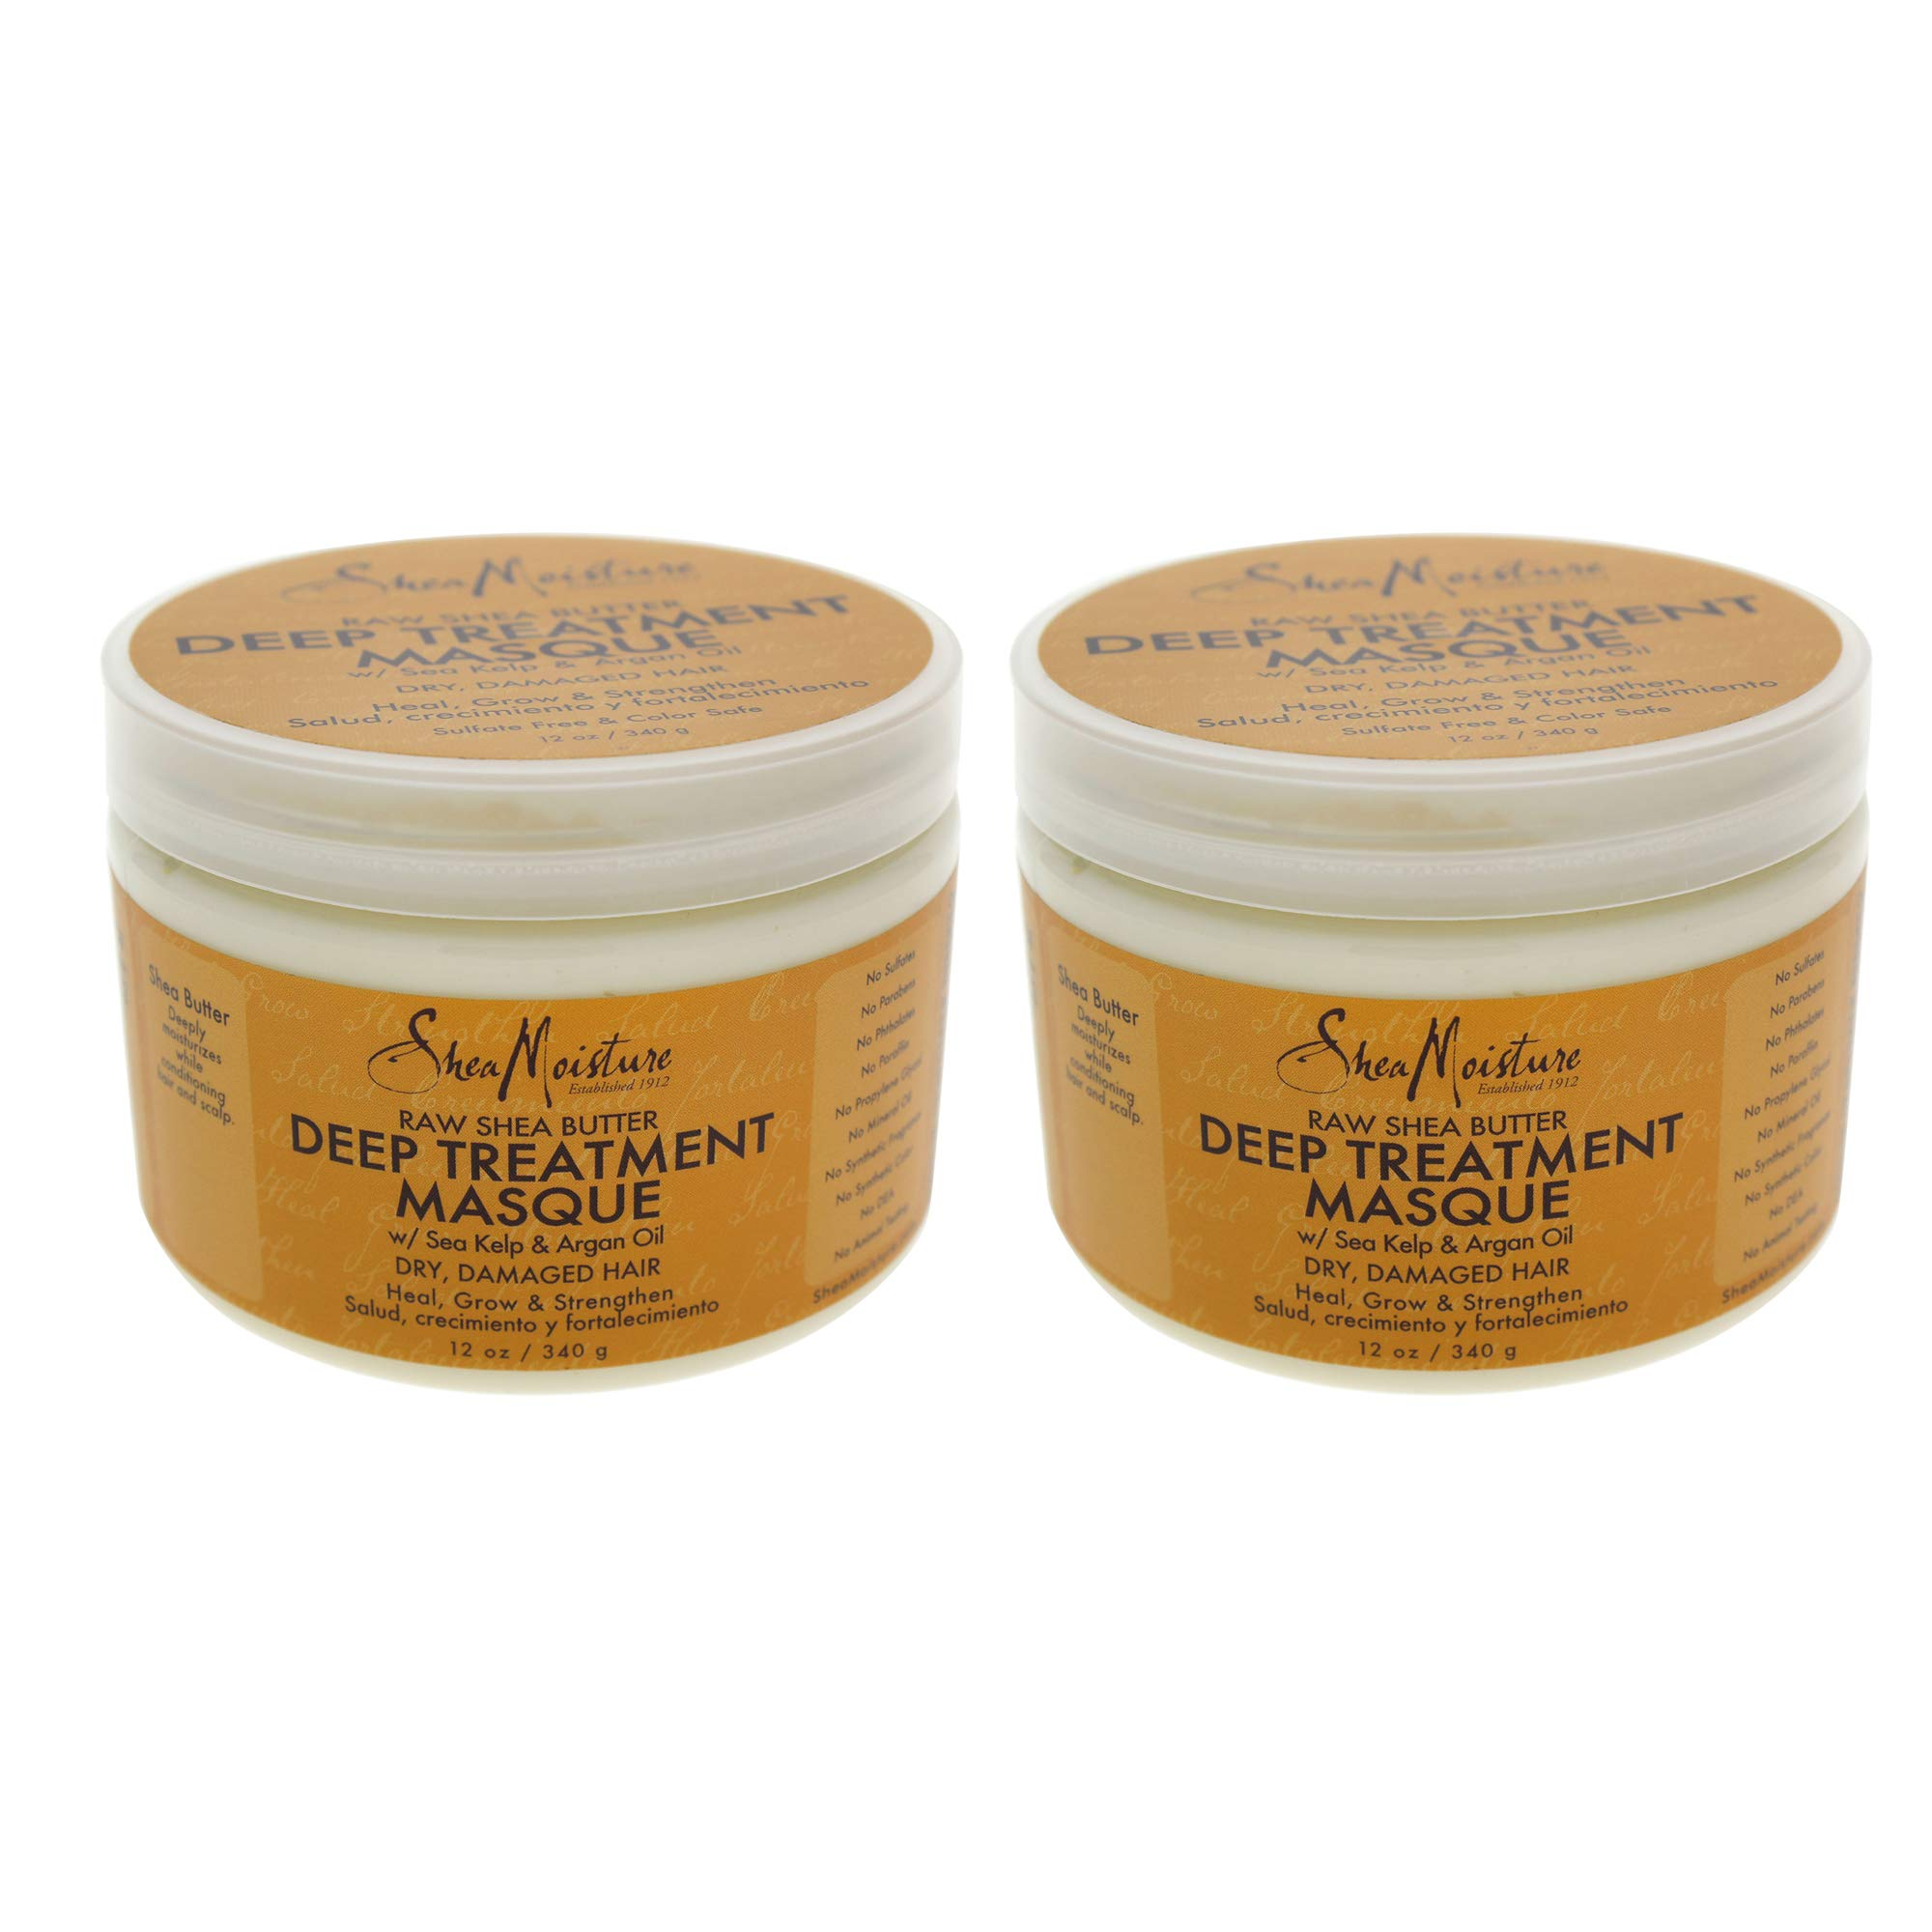 Raw Shea Butter Deep Treatment Masque - Pack of 2 by Shea Moisture for Unisex - 12 oz Masque